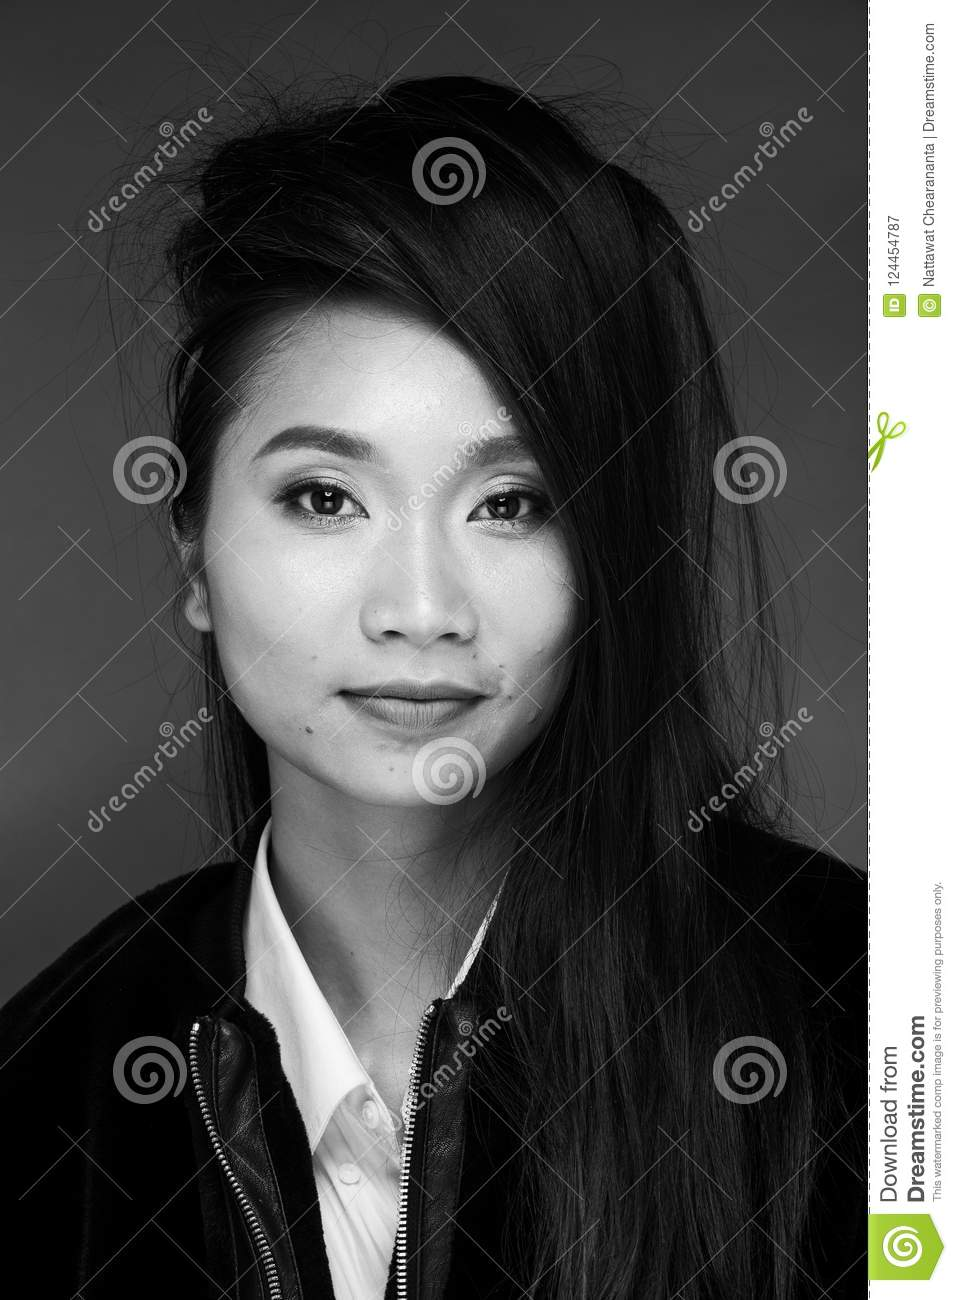 Asian Tanned Skin Woman With Strong Color Red Lips Stock Image